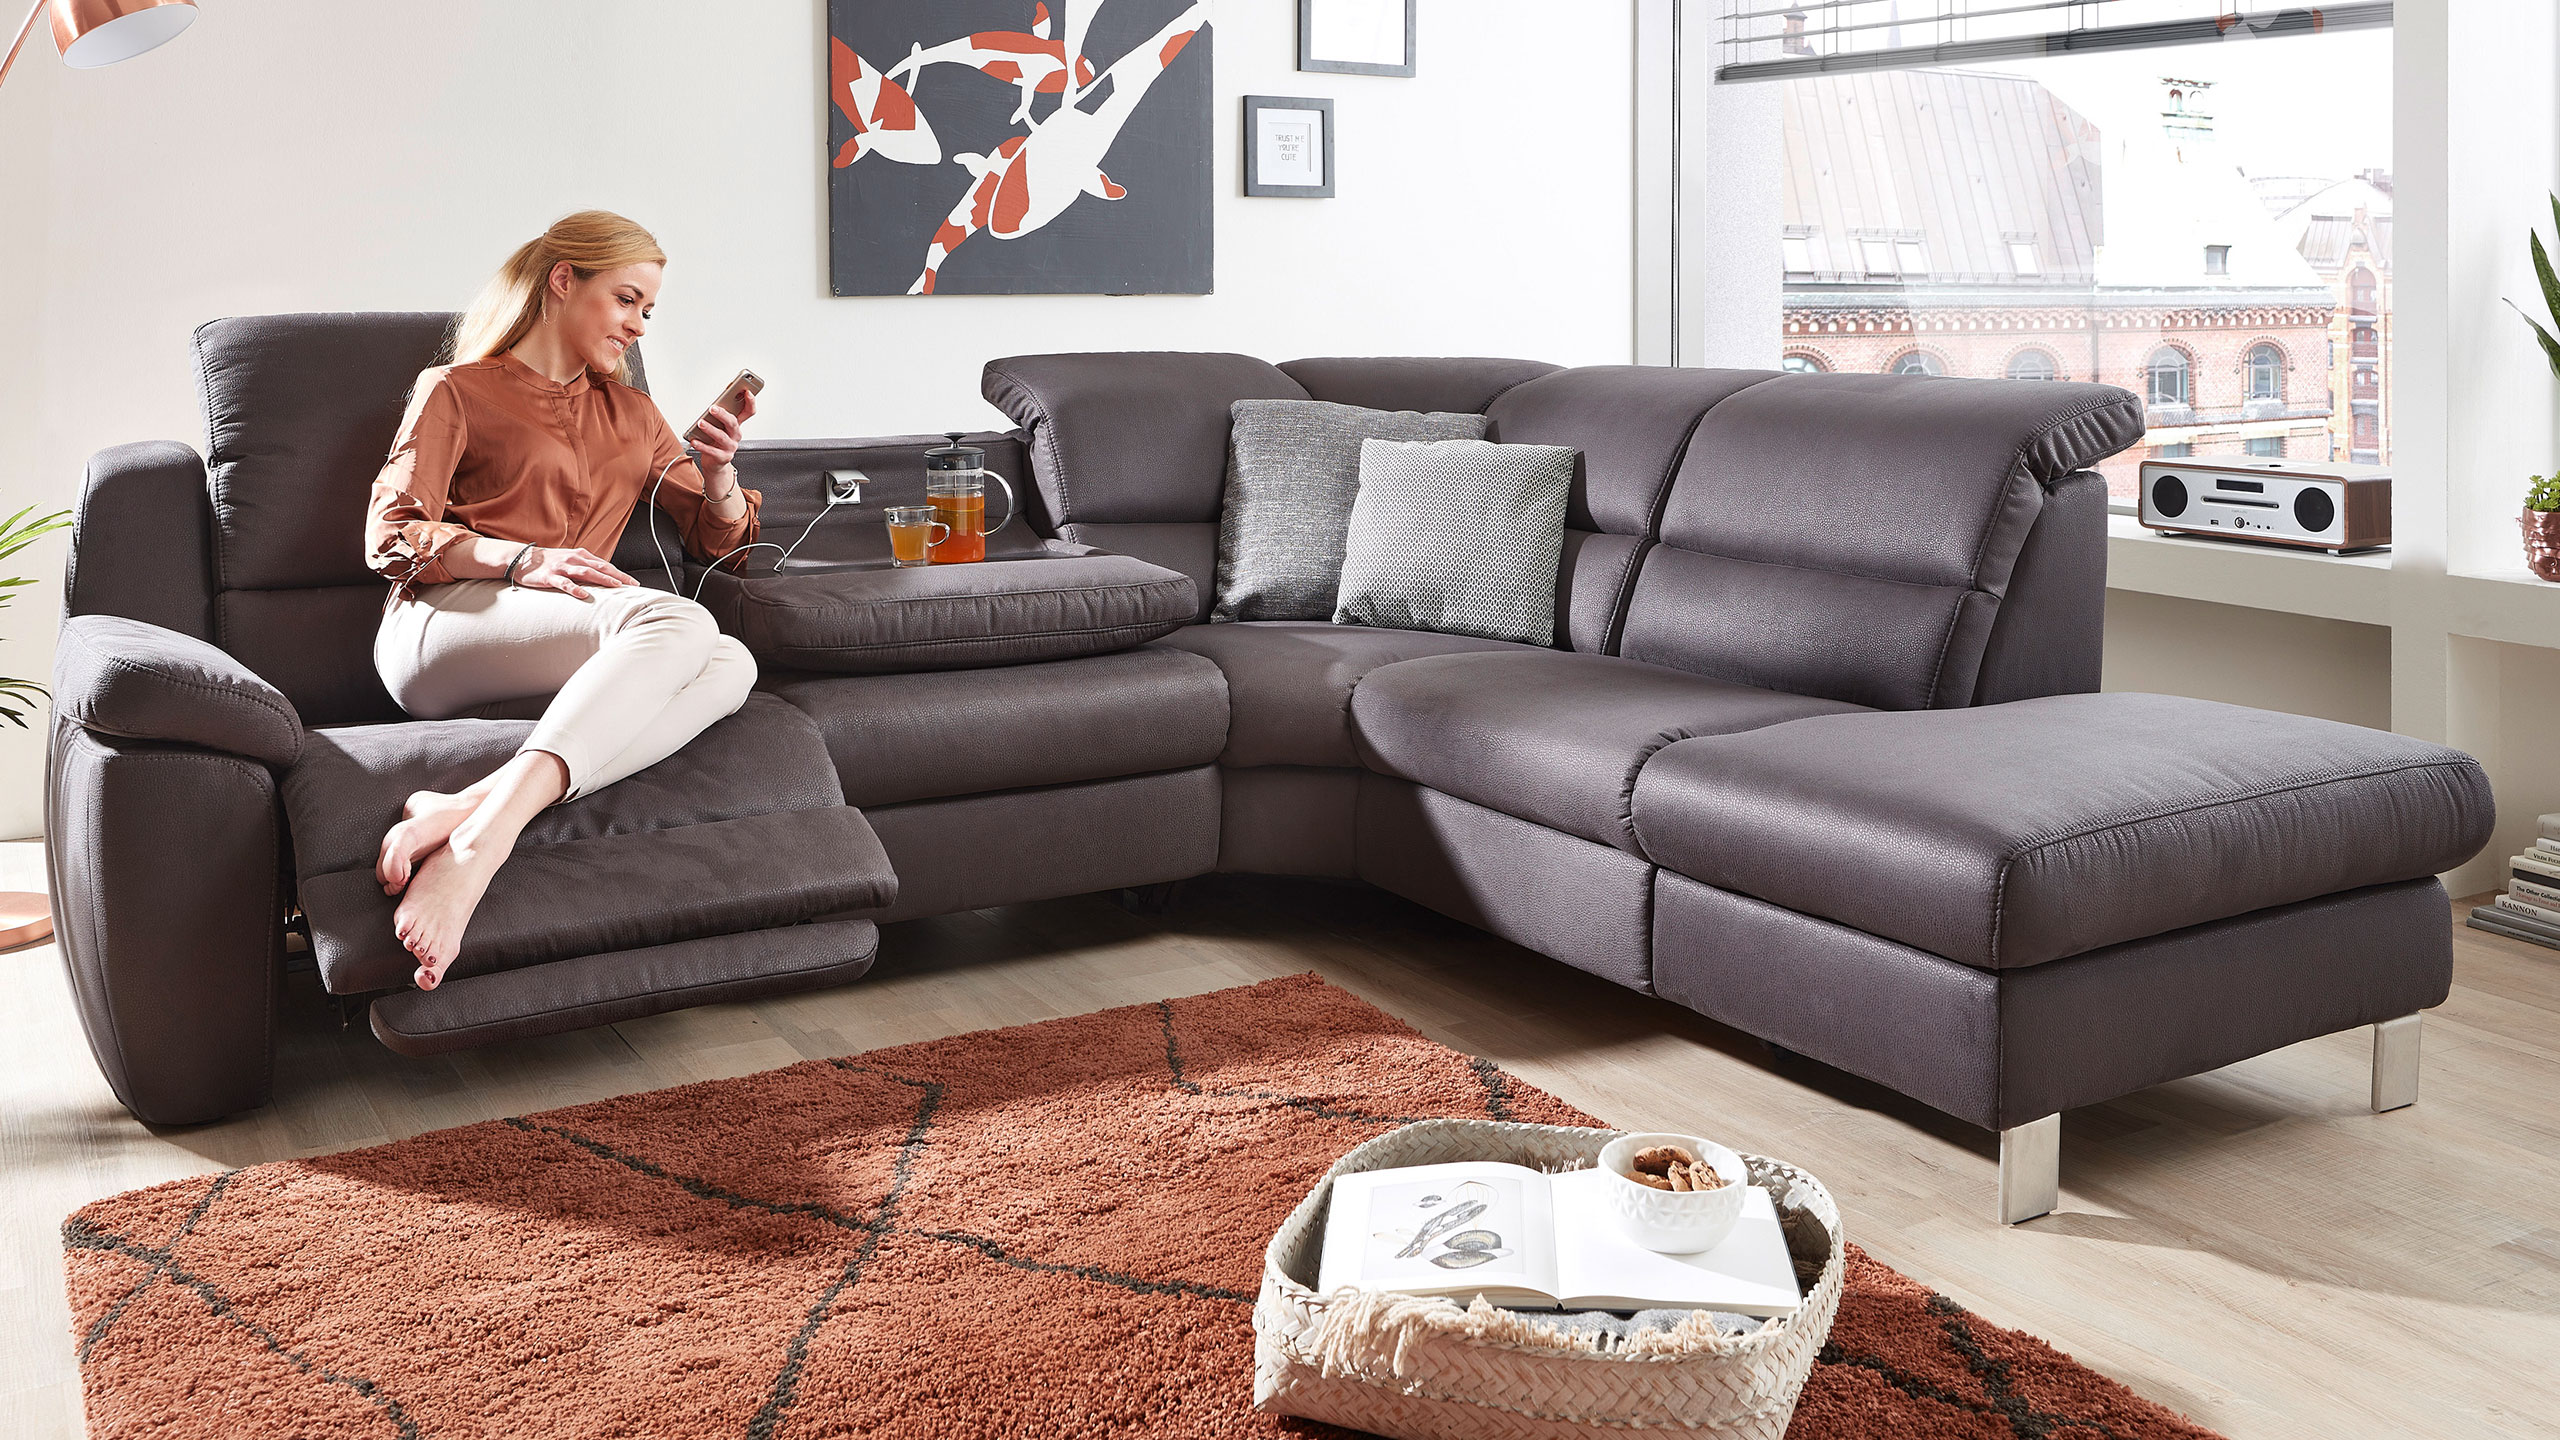 MultiMotion Ecksofa Stoff Grau